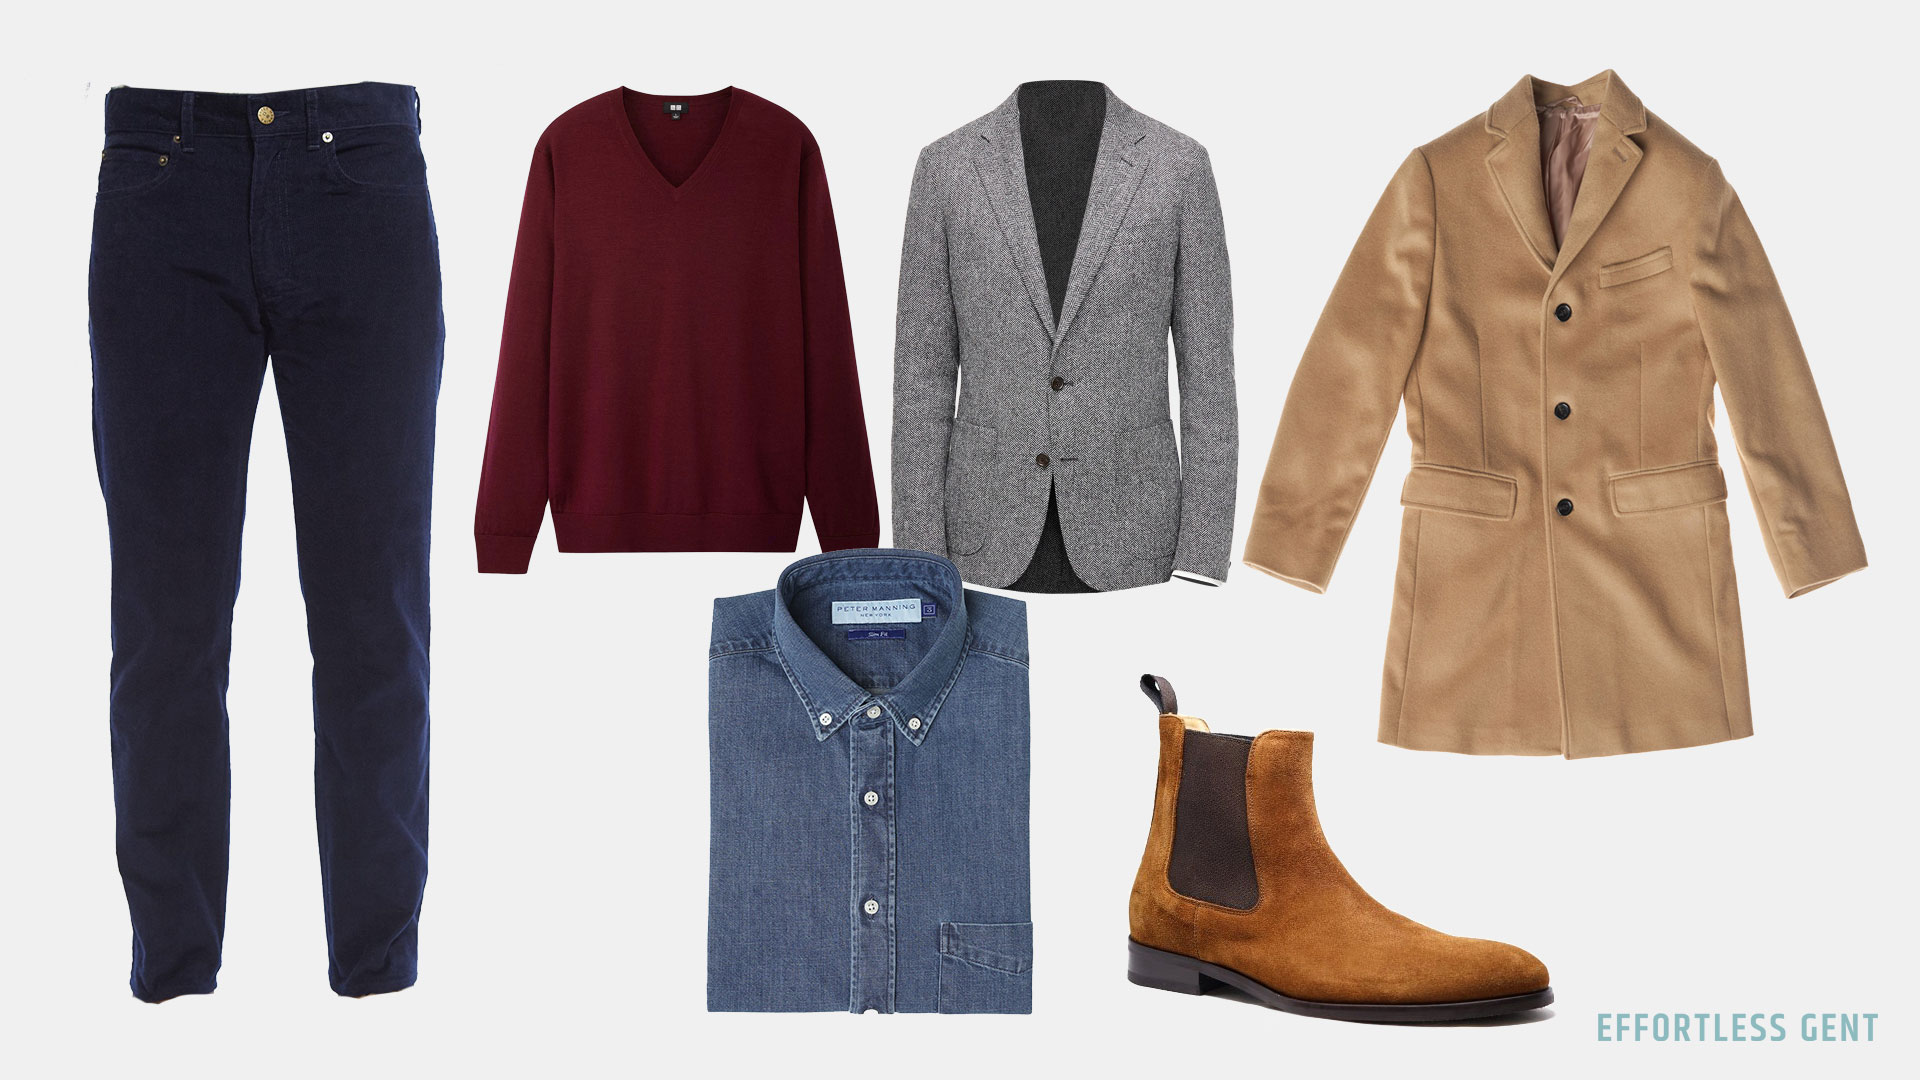 smart sharp casual outfit ideas for holiday gatherings